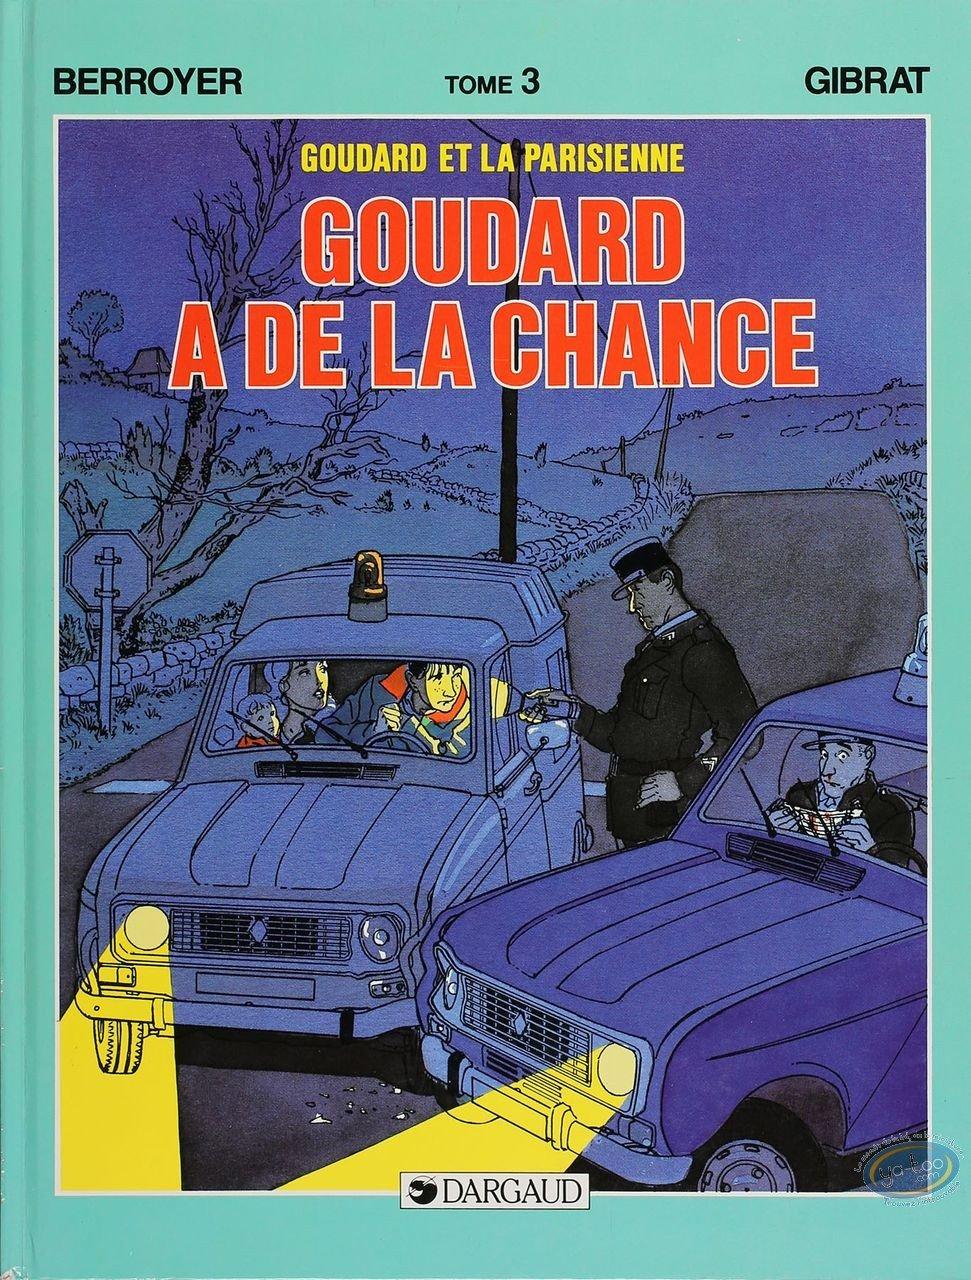 Listed European Comic Books, Goudard : Goudard a de la Chance (very good condition)